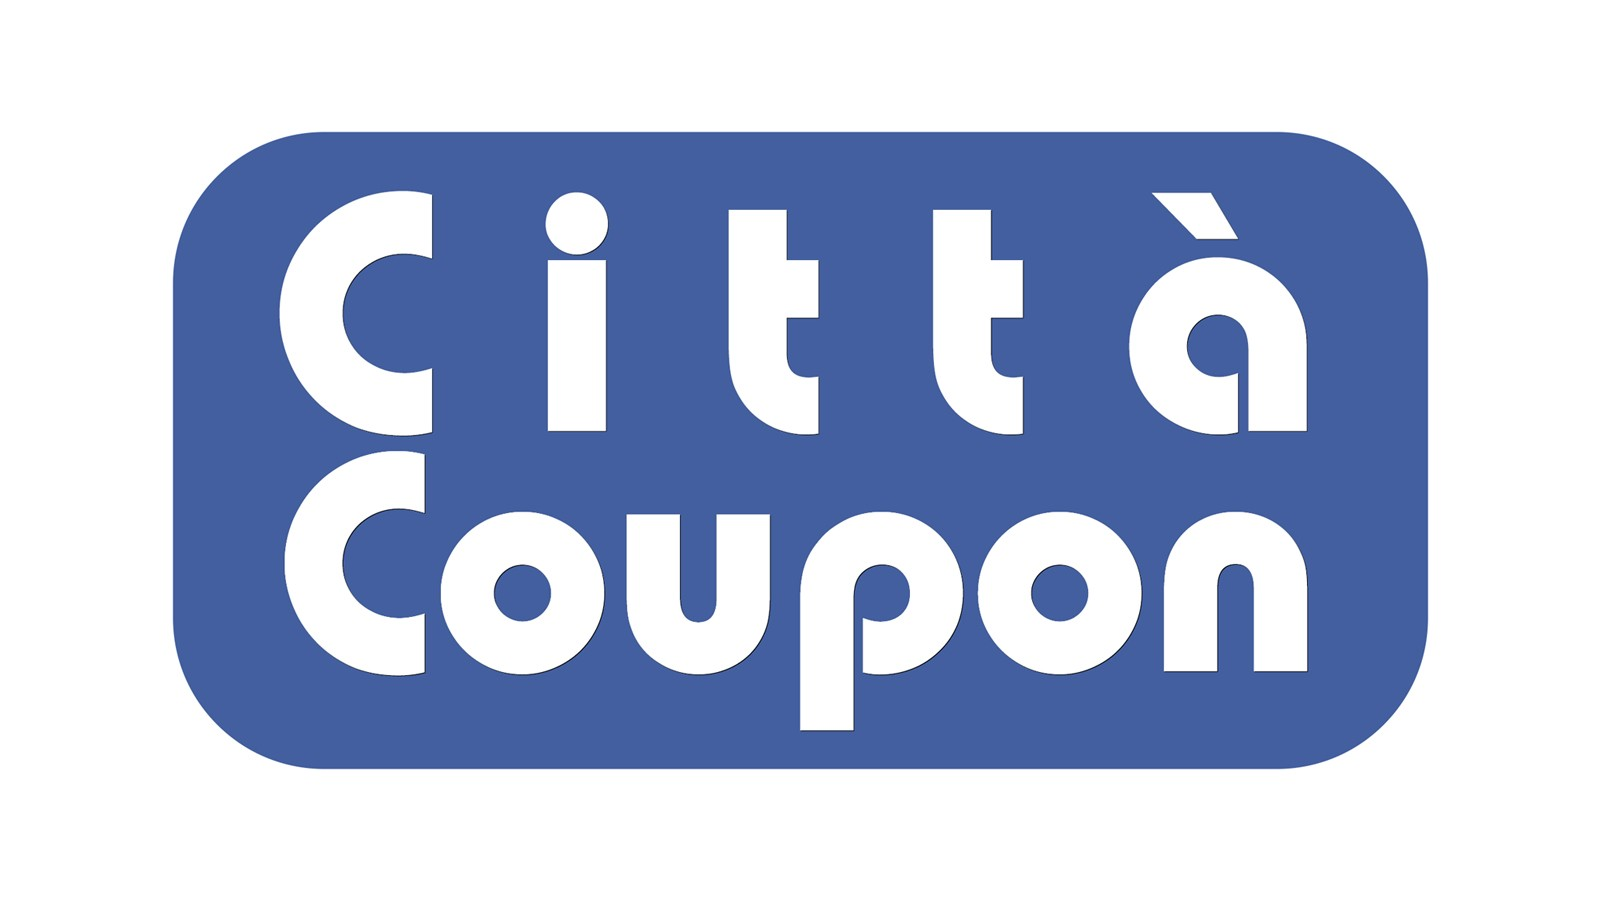 Cittacoupon